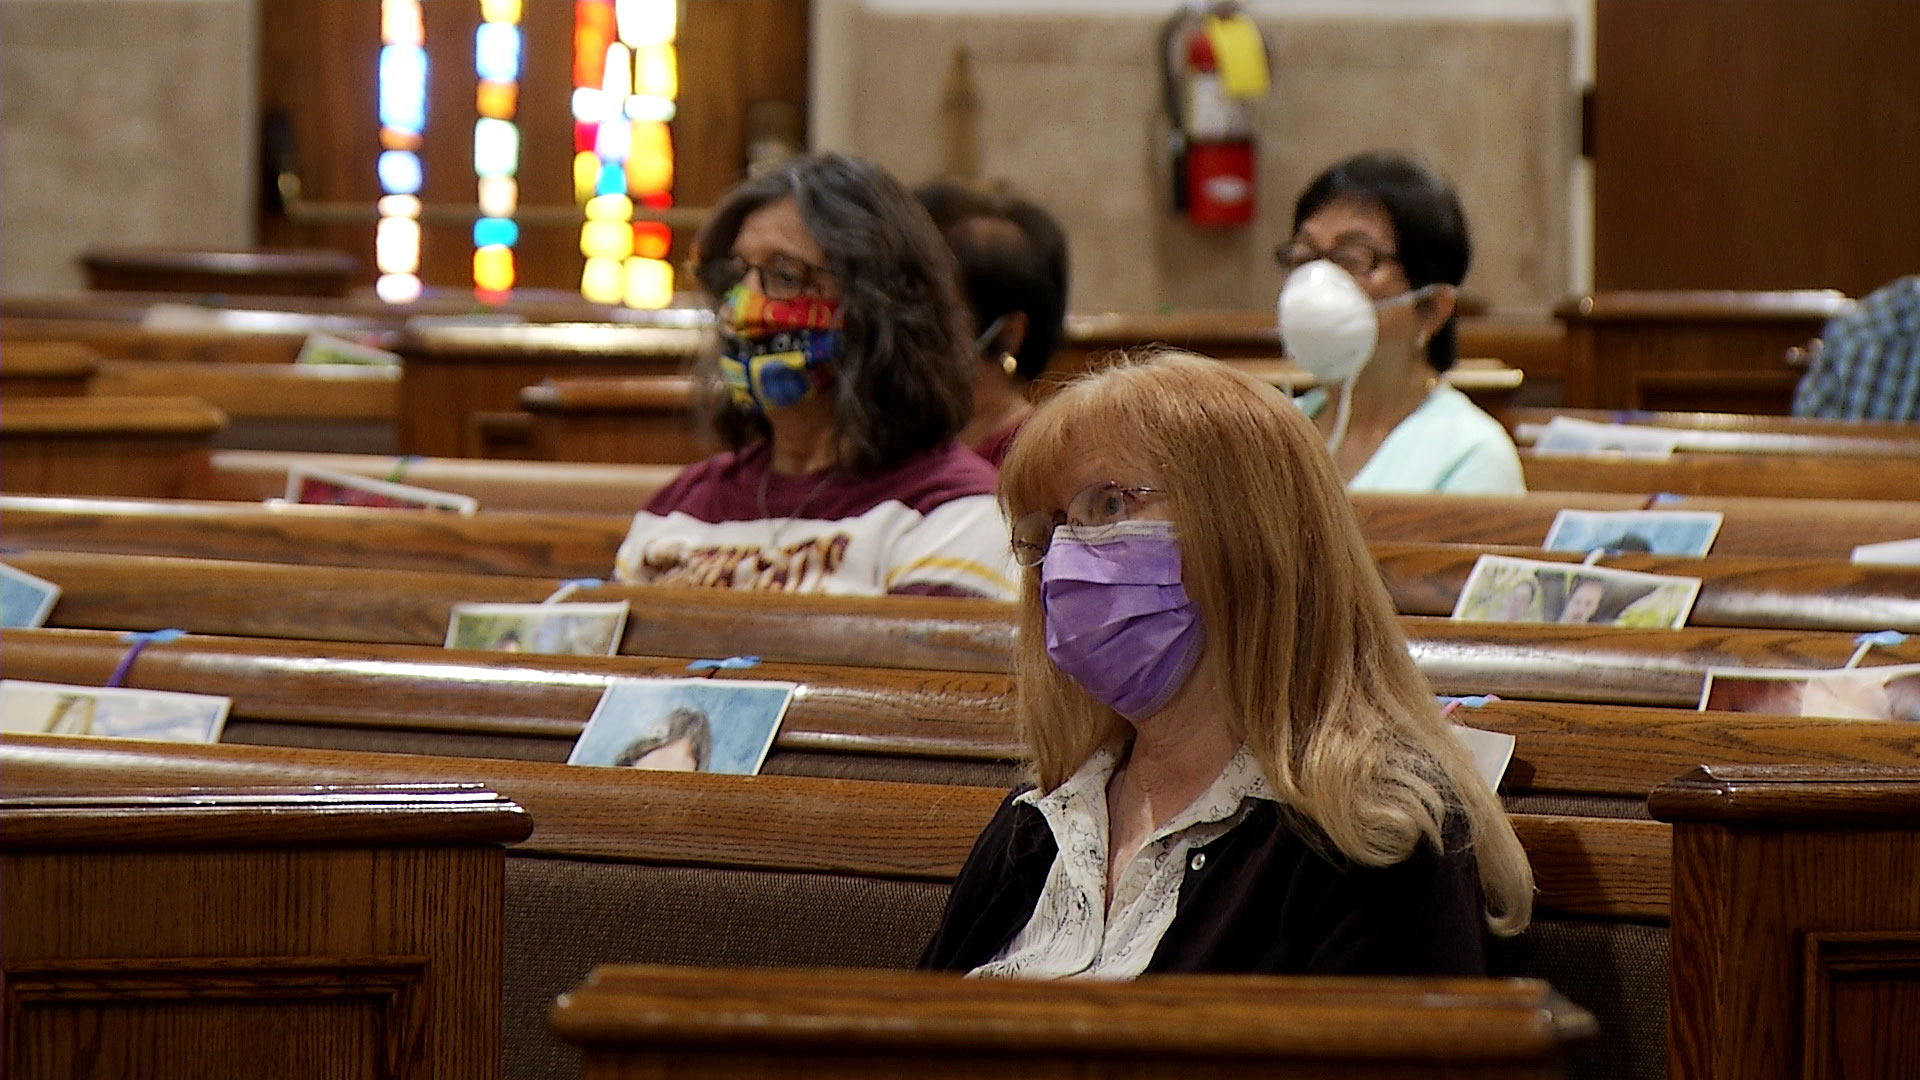 Parishioners attend mass at St. Mary's Church in Chandler on May 19, 2020. The Catholic Diocese of Phoenix gave pastors the option to resume public mass with limited capacity and face masks as added safety precautions. Photos of the congregation's members fastened to the pews indicate spaces where people cannot sit.